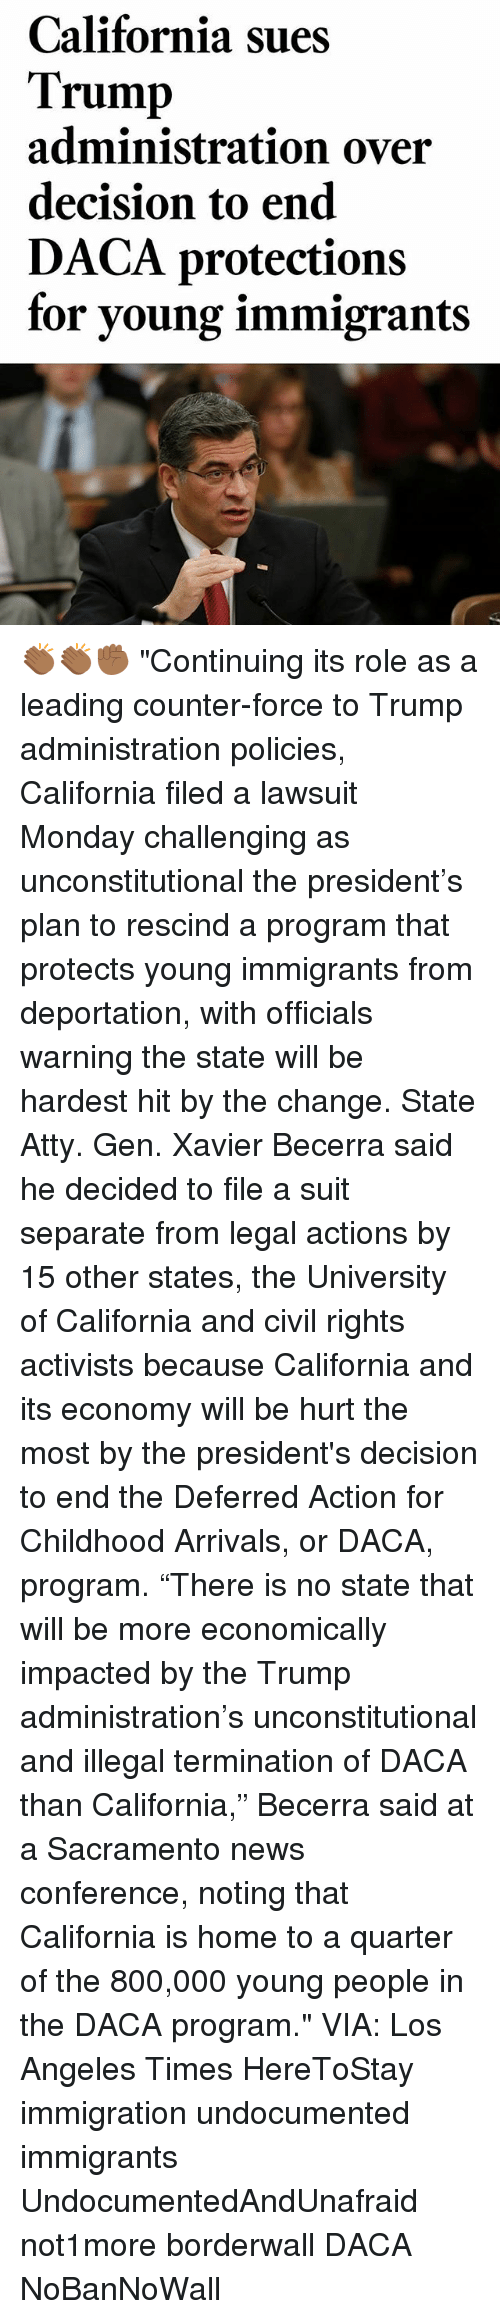 "Trumping: California sues  Trump  administration over  decision to end  DACA protections  for young immigrant:s 👏🏾👏🏾✊🏾 ""Continuing its role as a leading counter-force to Trump administration policies, California filed a lawsuit Monday challenging as unconstitutional the president's plan to rescind a program that protects young immigrants from deportation, with officials warning the state will be hardest hit by the change. State Atty. Gen. Xavier Becerra said he decided to file a suit separate from legal actions by 15 other states, the University of California and civil rights activists because California and its economy will be hurt the most by the president's decision to end the Deferred Action for Childhood Arrivals, or DACA, program. ""There is no state that will be more economically impacted by the Trump administration's unconstitutional and illegal termination of DACA than California,"" Becerra said at a Sacramento news conference, noting that California is home to a quarter of the 800,000 young people in the DACA program."" VIA: Los Angeles Times HereToStay immigration undocumented immigrants UndocumentedAndUnafraid not1more borderwall DACA NoBanNoWall"